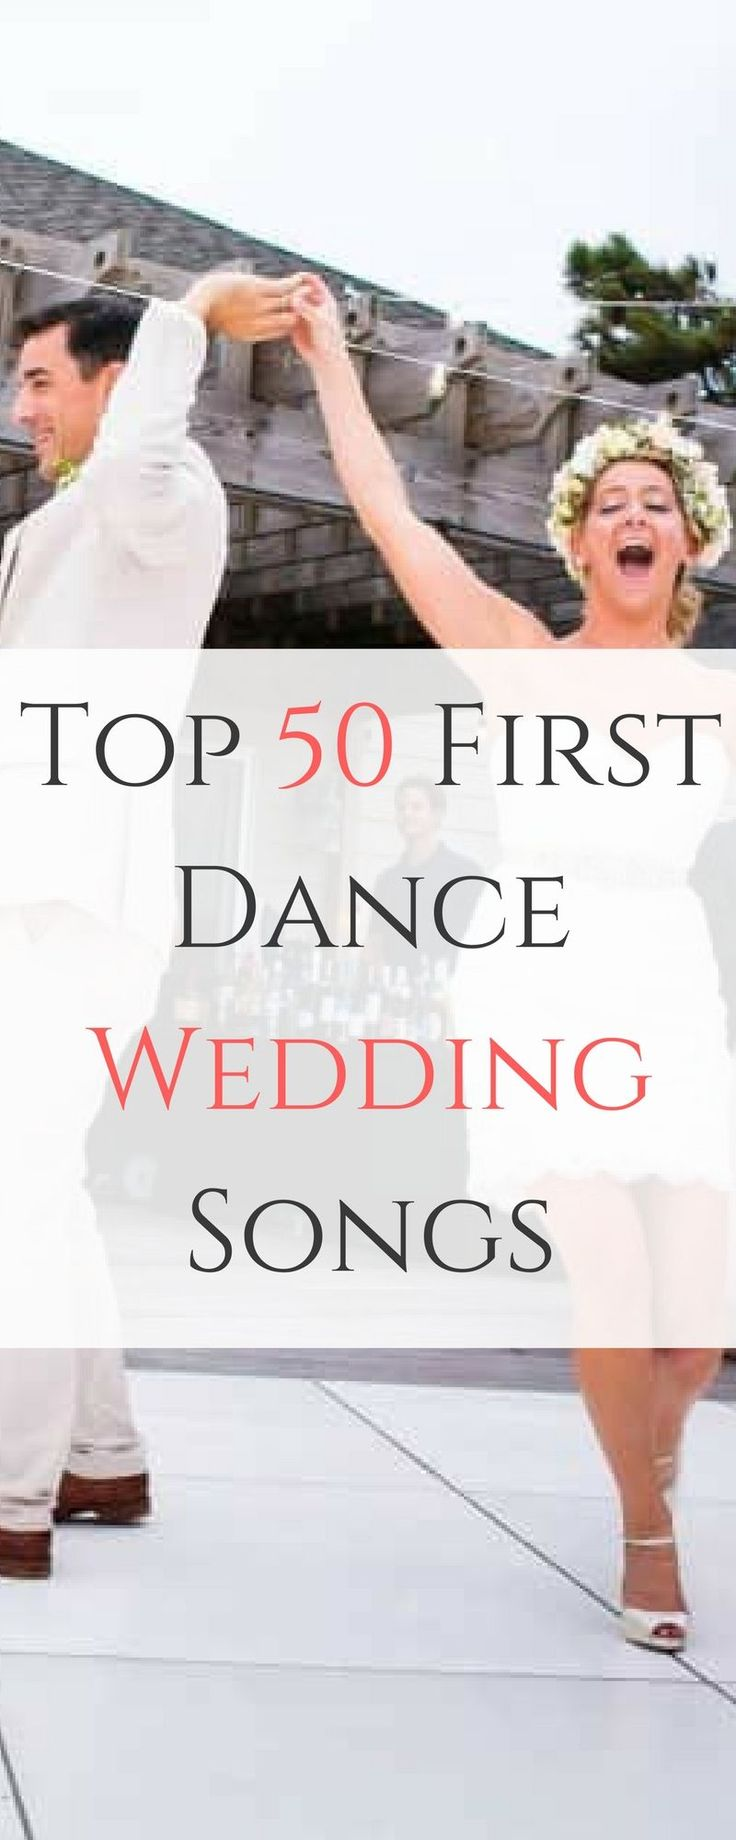 Wedding  planning is often more stressful than most couples expect, and as DJs we hate  when wedding playlists are hastily put together, so we decided to give couples  in planning some inspiration for their wedding's first dance songs.